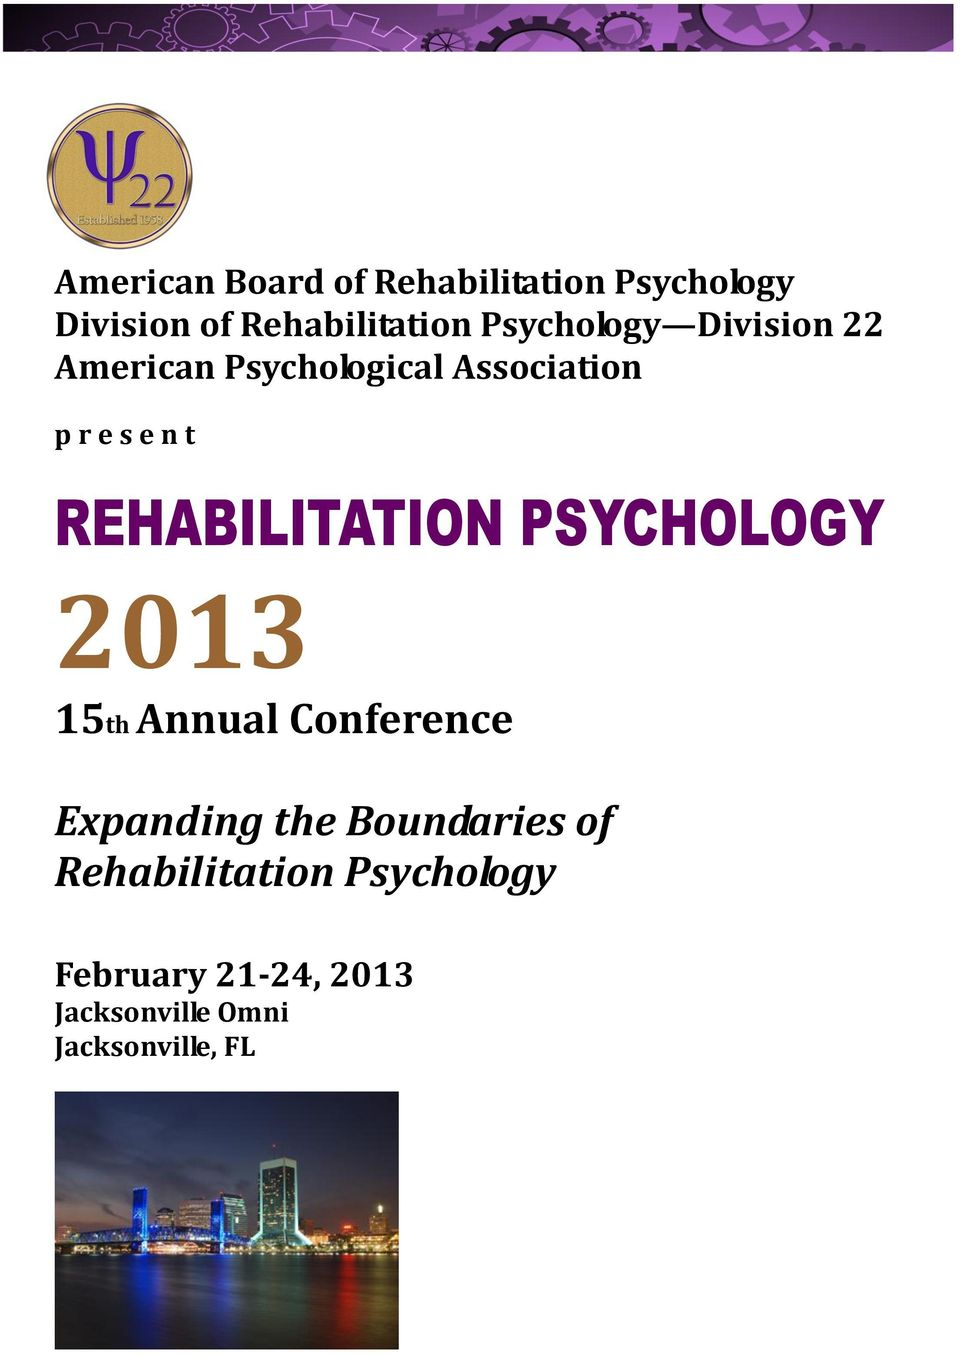 2013 15th Annual Conference Expanding the Boundaries of Rehabilitation Psychology